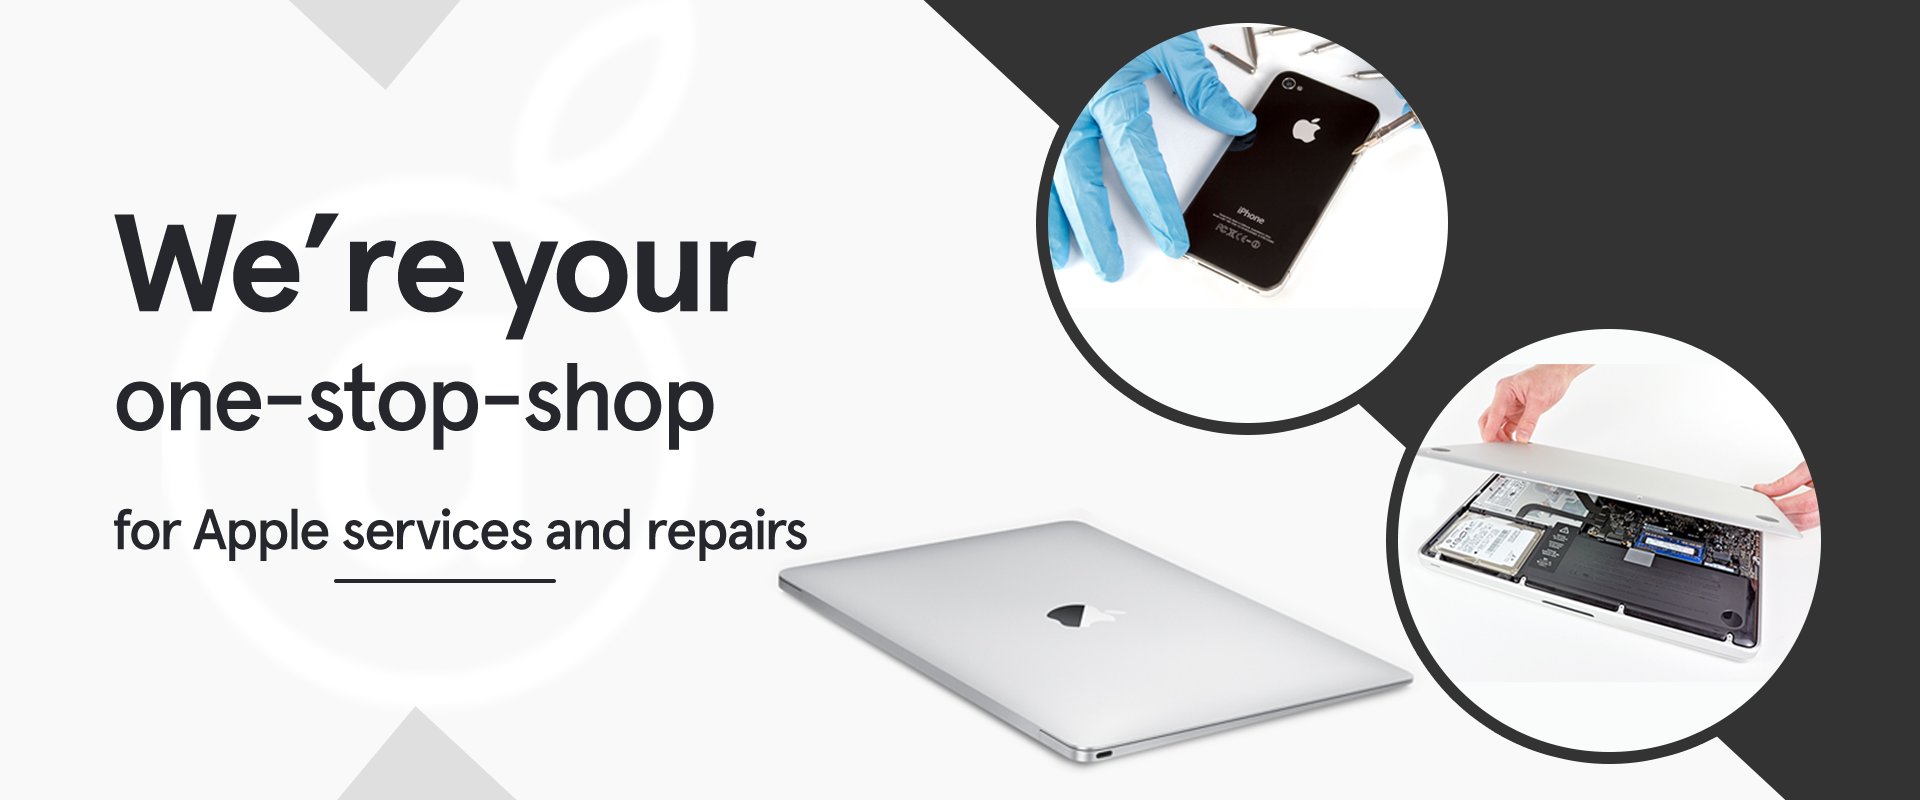 Apple Services and Repairs